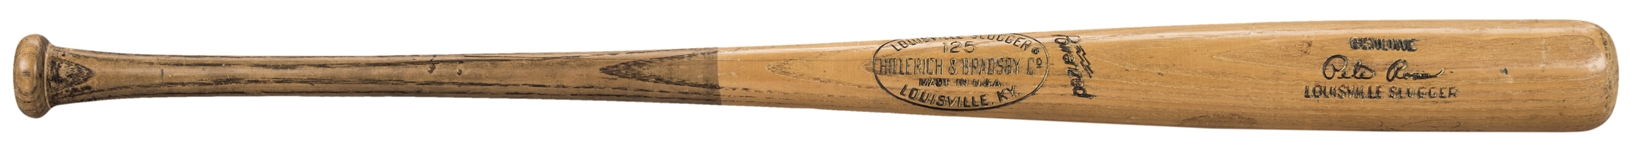 1971-1972 Pete Rose Game Used & Twice Signed Hillerich & Bradsby S222 Model Bat (PSA/DNA GU 8.5 & Beckett)